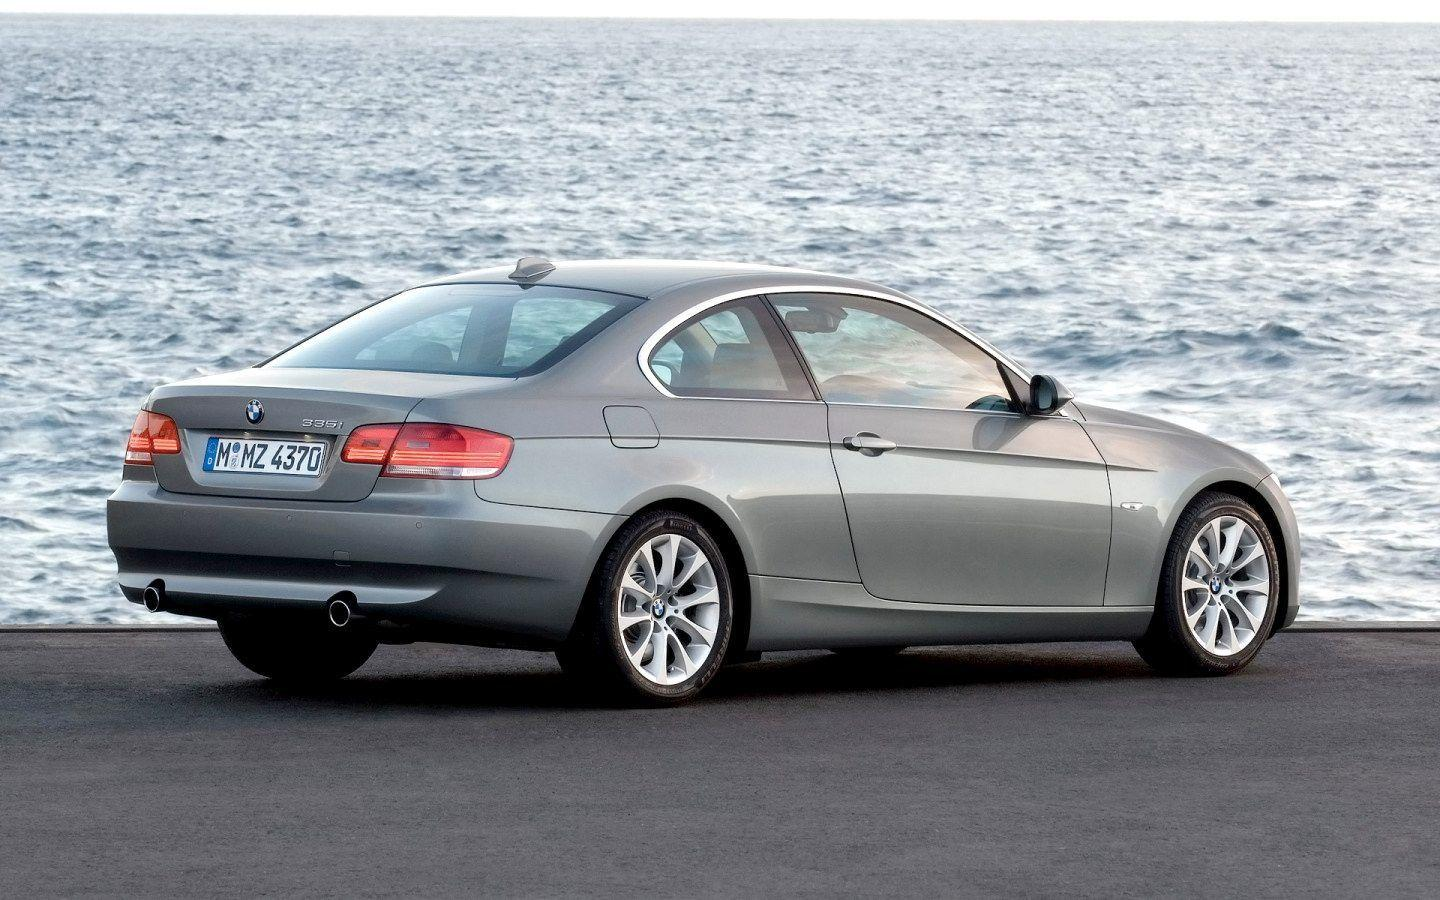 2007 BMW 335i Coupe Wallpaper 06 - 1440x900